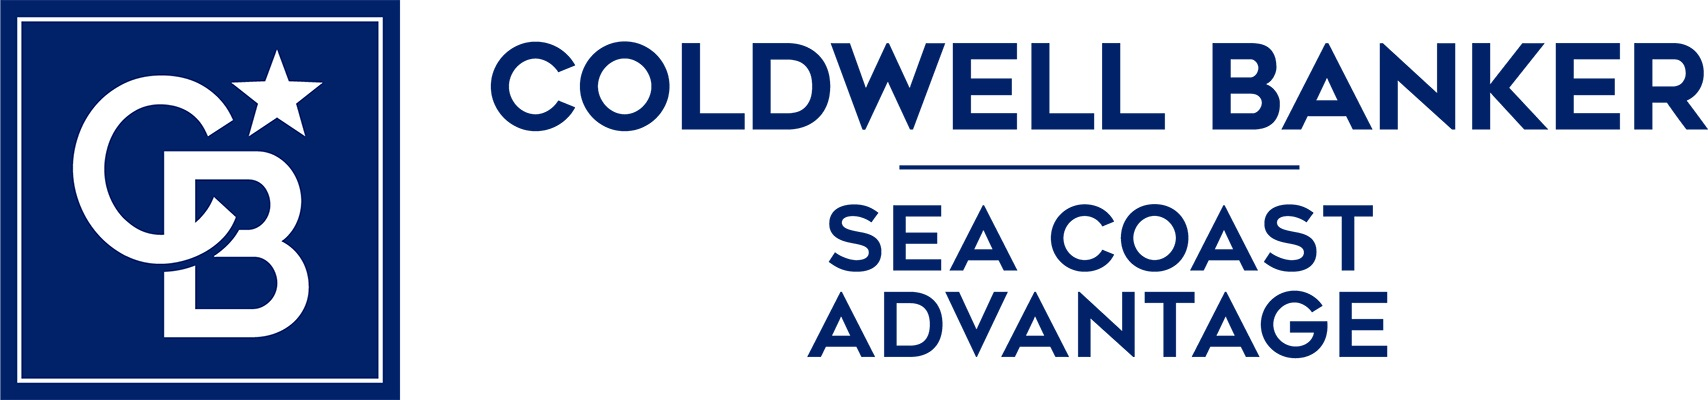 Barbara Overcash - Coldwell Banker Sea Coast Advantage Realty